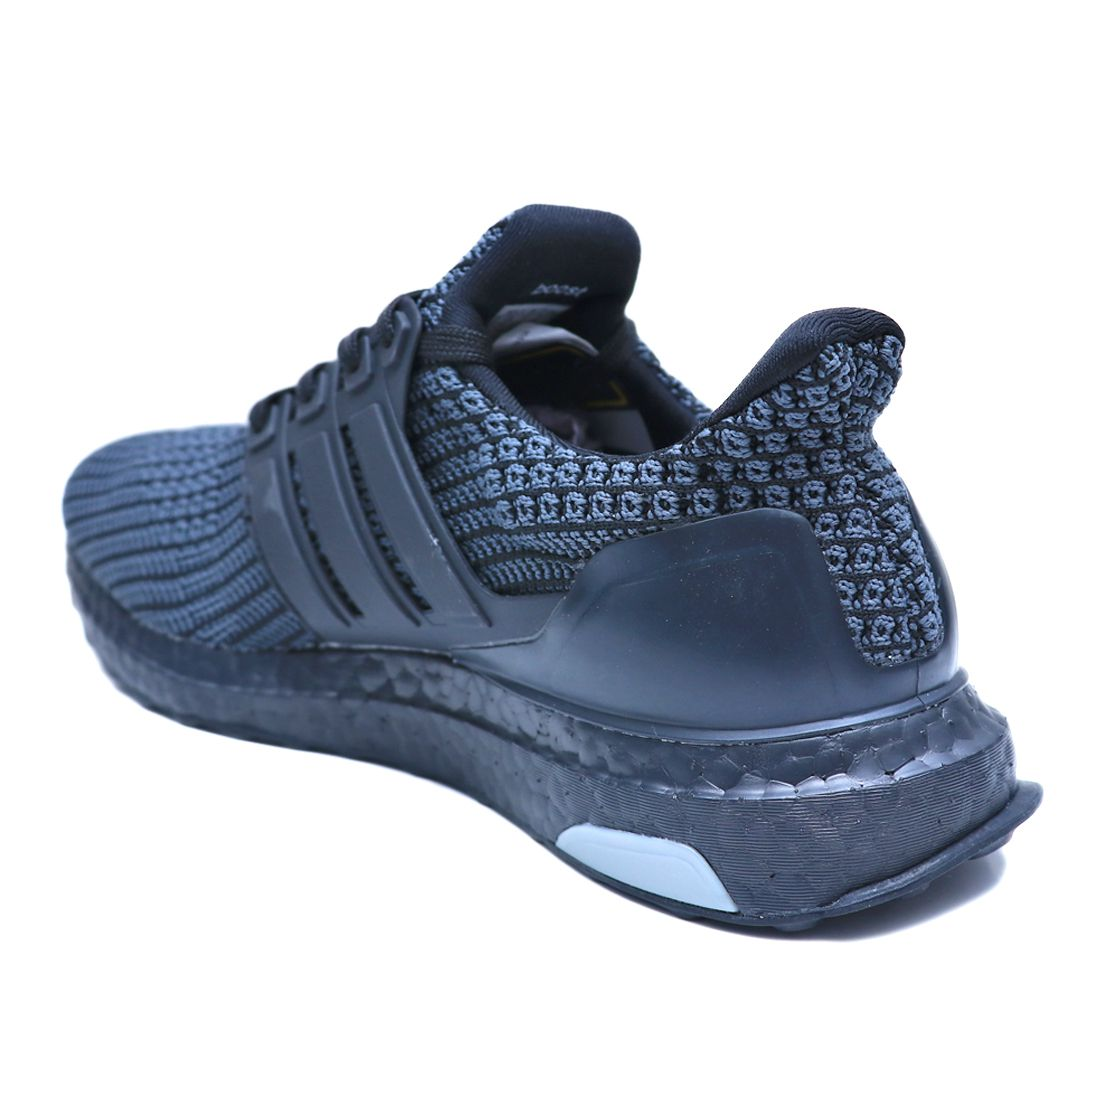 ... Adidas UltraBoost 4.0 Low Black Running Shoes ...